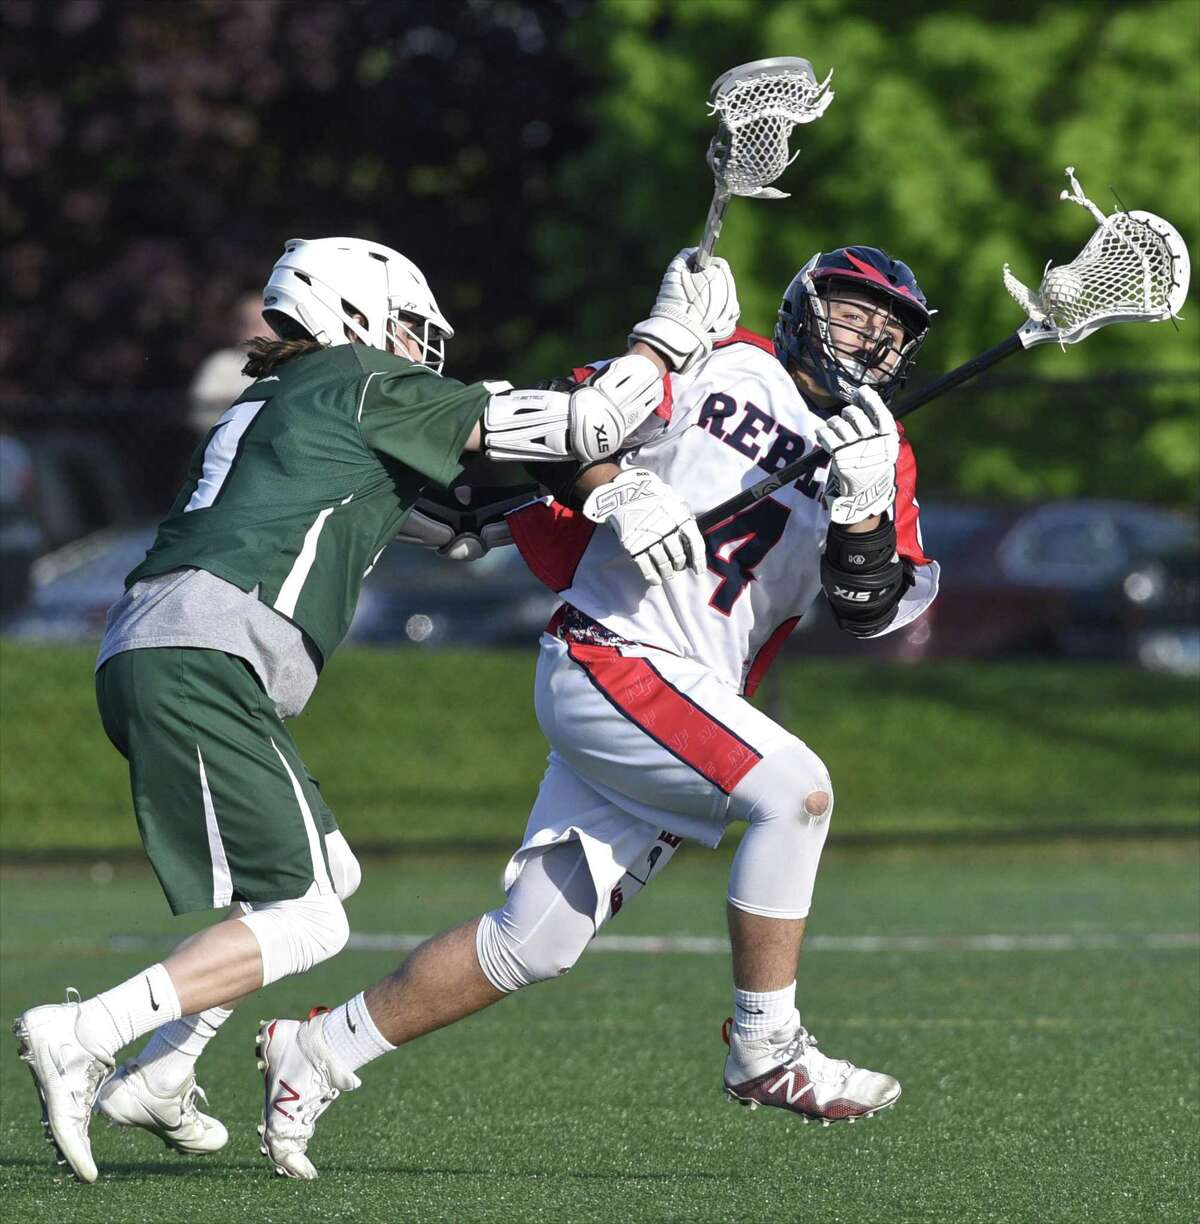 New Fairfield's Zachary Buffington (4) looks to go around New Milford's William Gully during their game Thursday, at New Fairfield High School. The Rebels won 17-5.